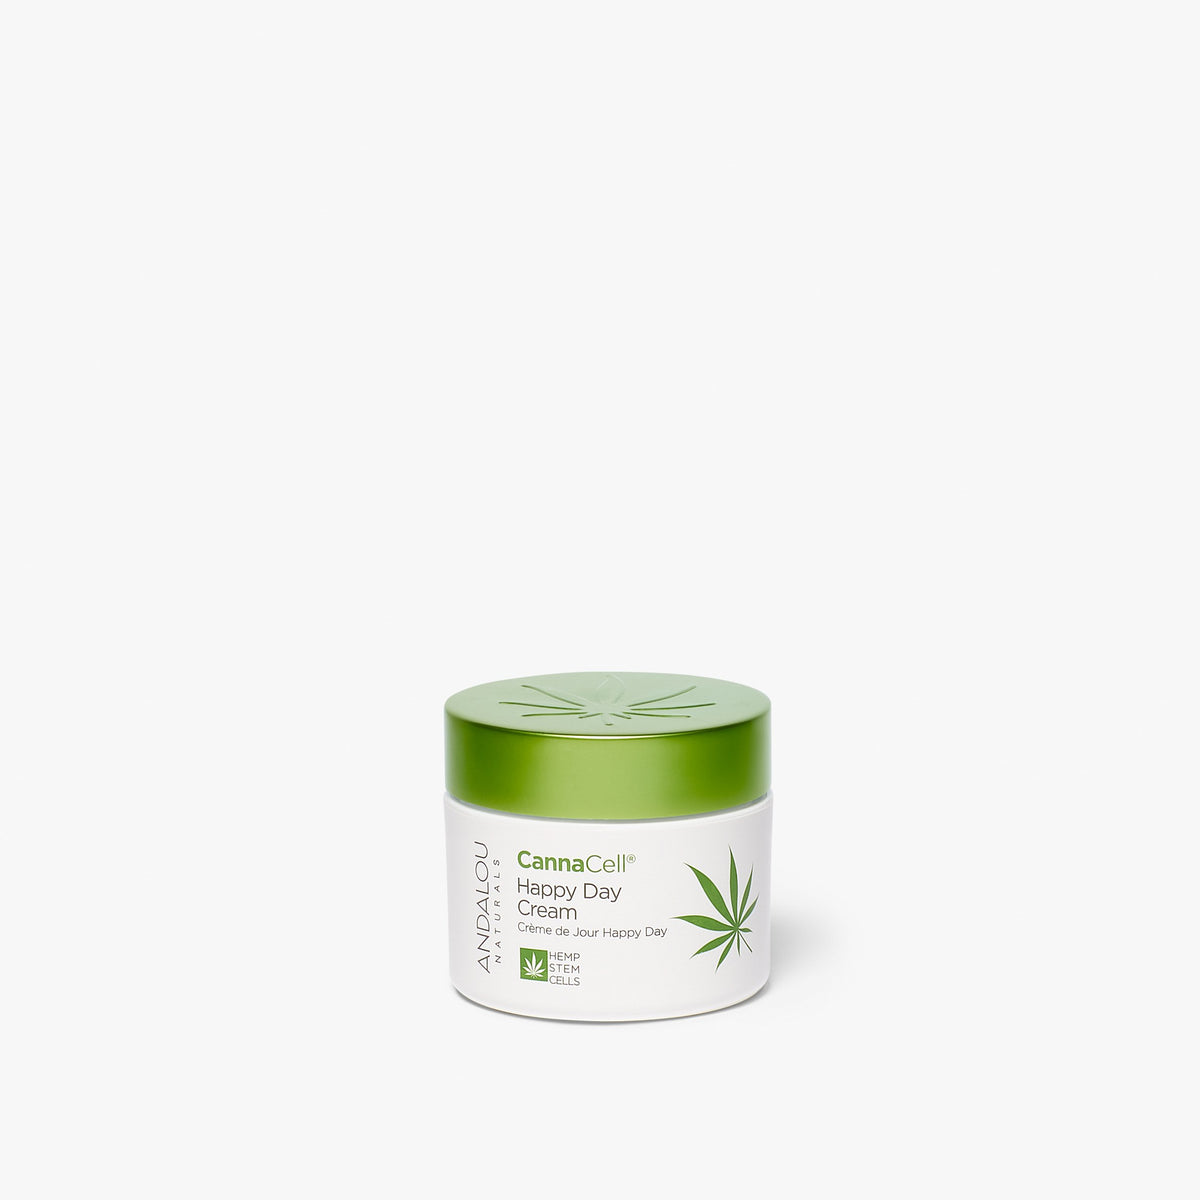 Andalou Naturals CannaCell Happy Day Cream jar